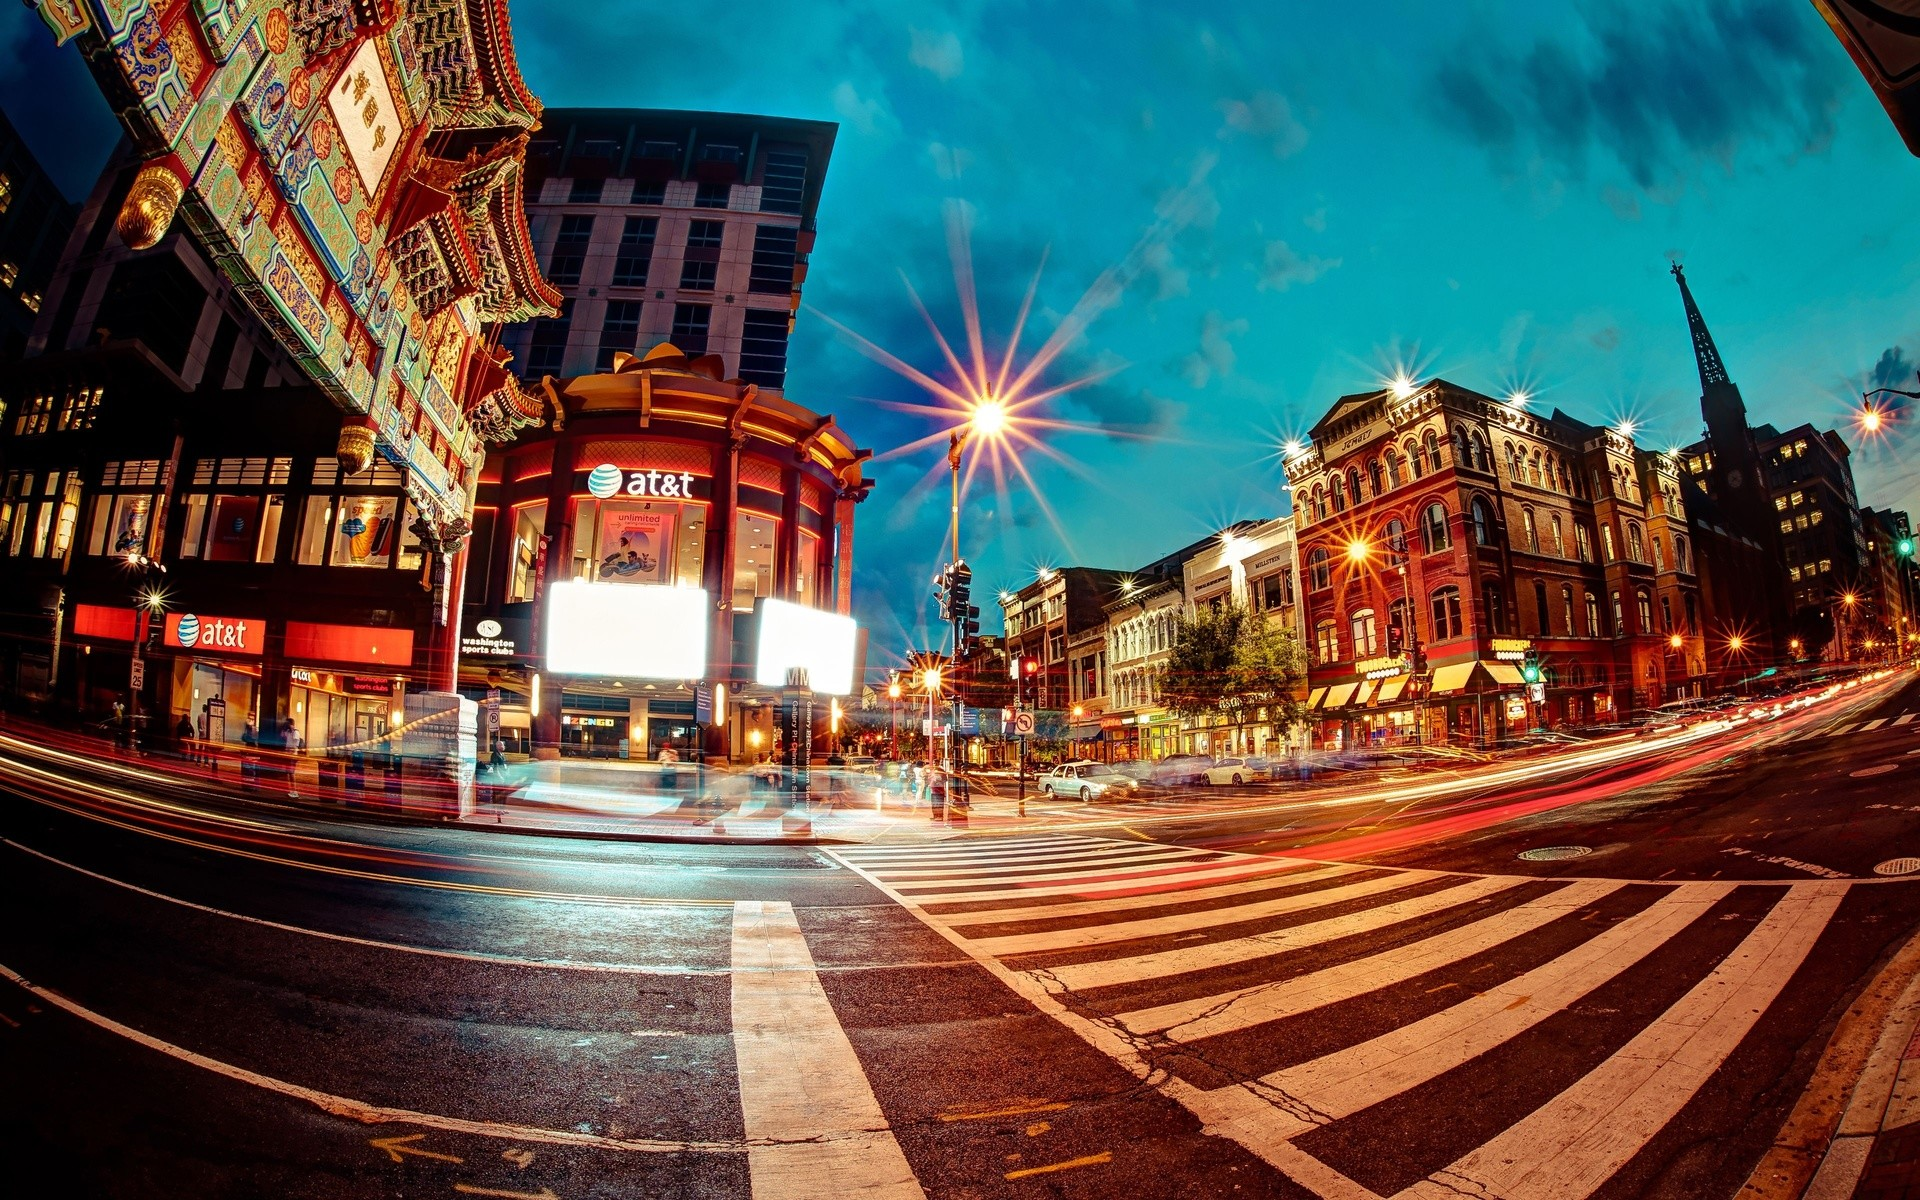 Photography – Fisheye Architecture Building Place Street Road People Light  Time-Lapse City Wallpaper